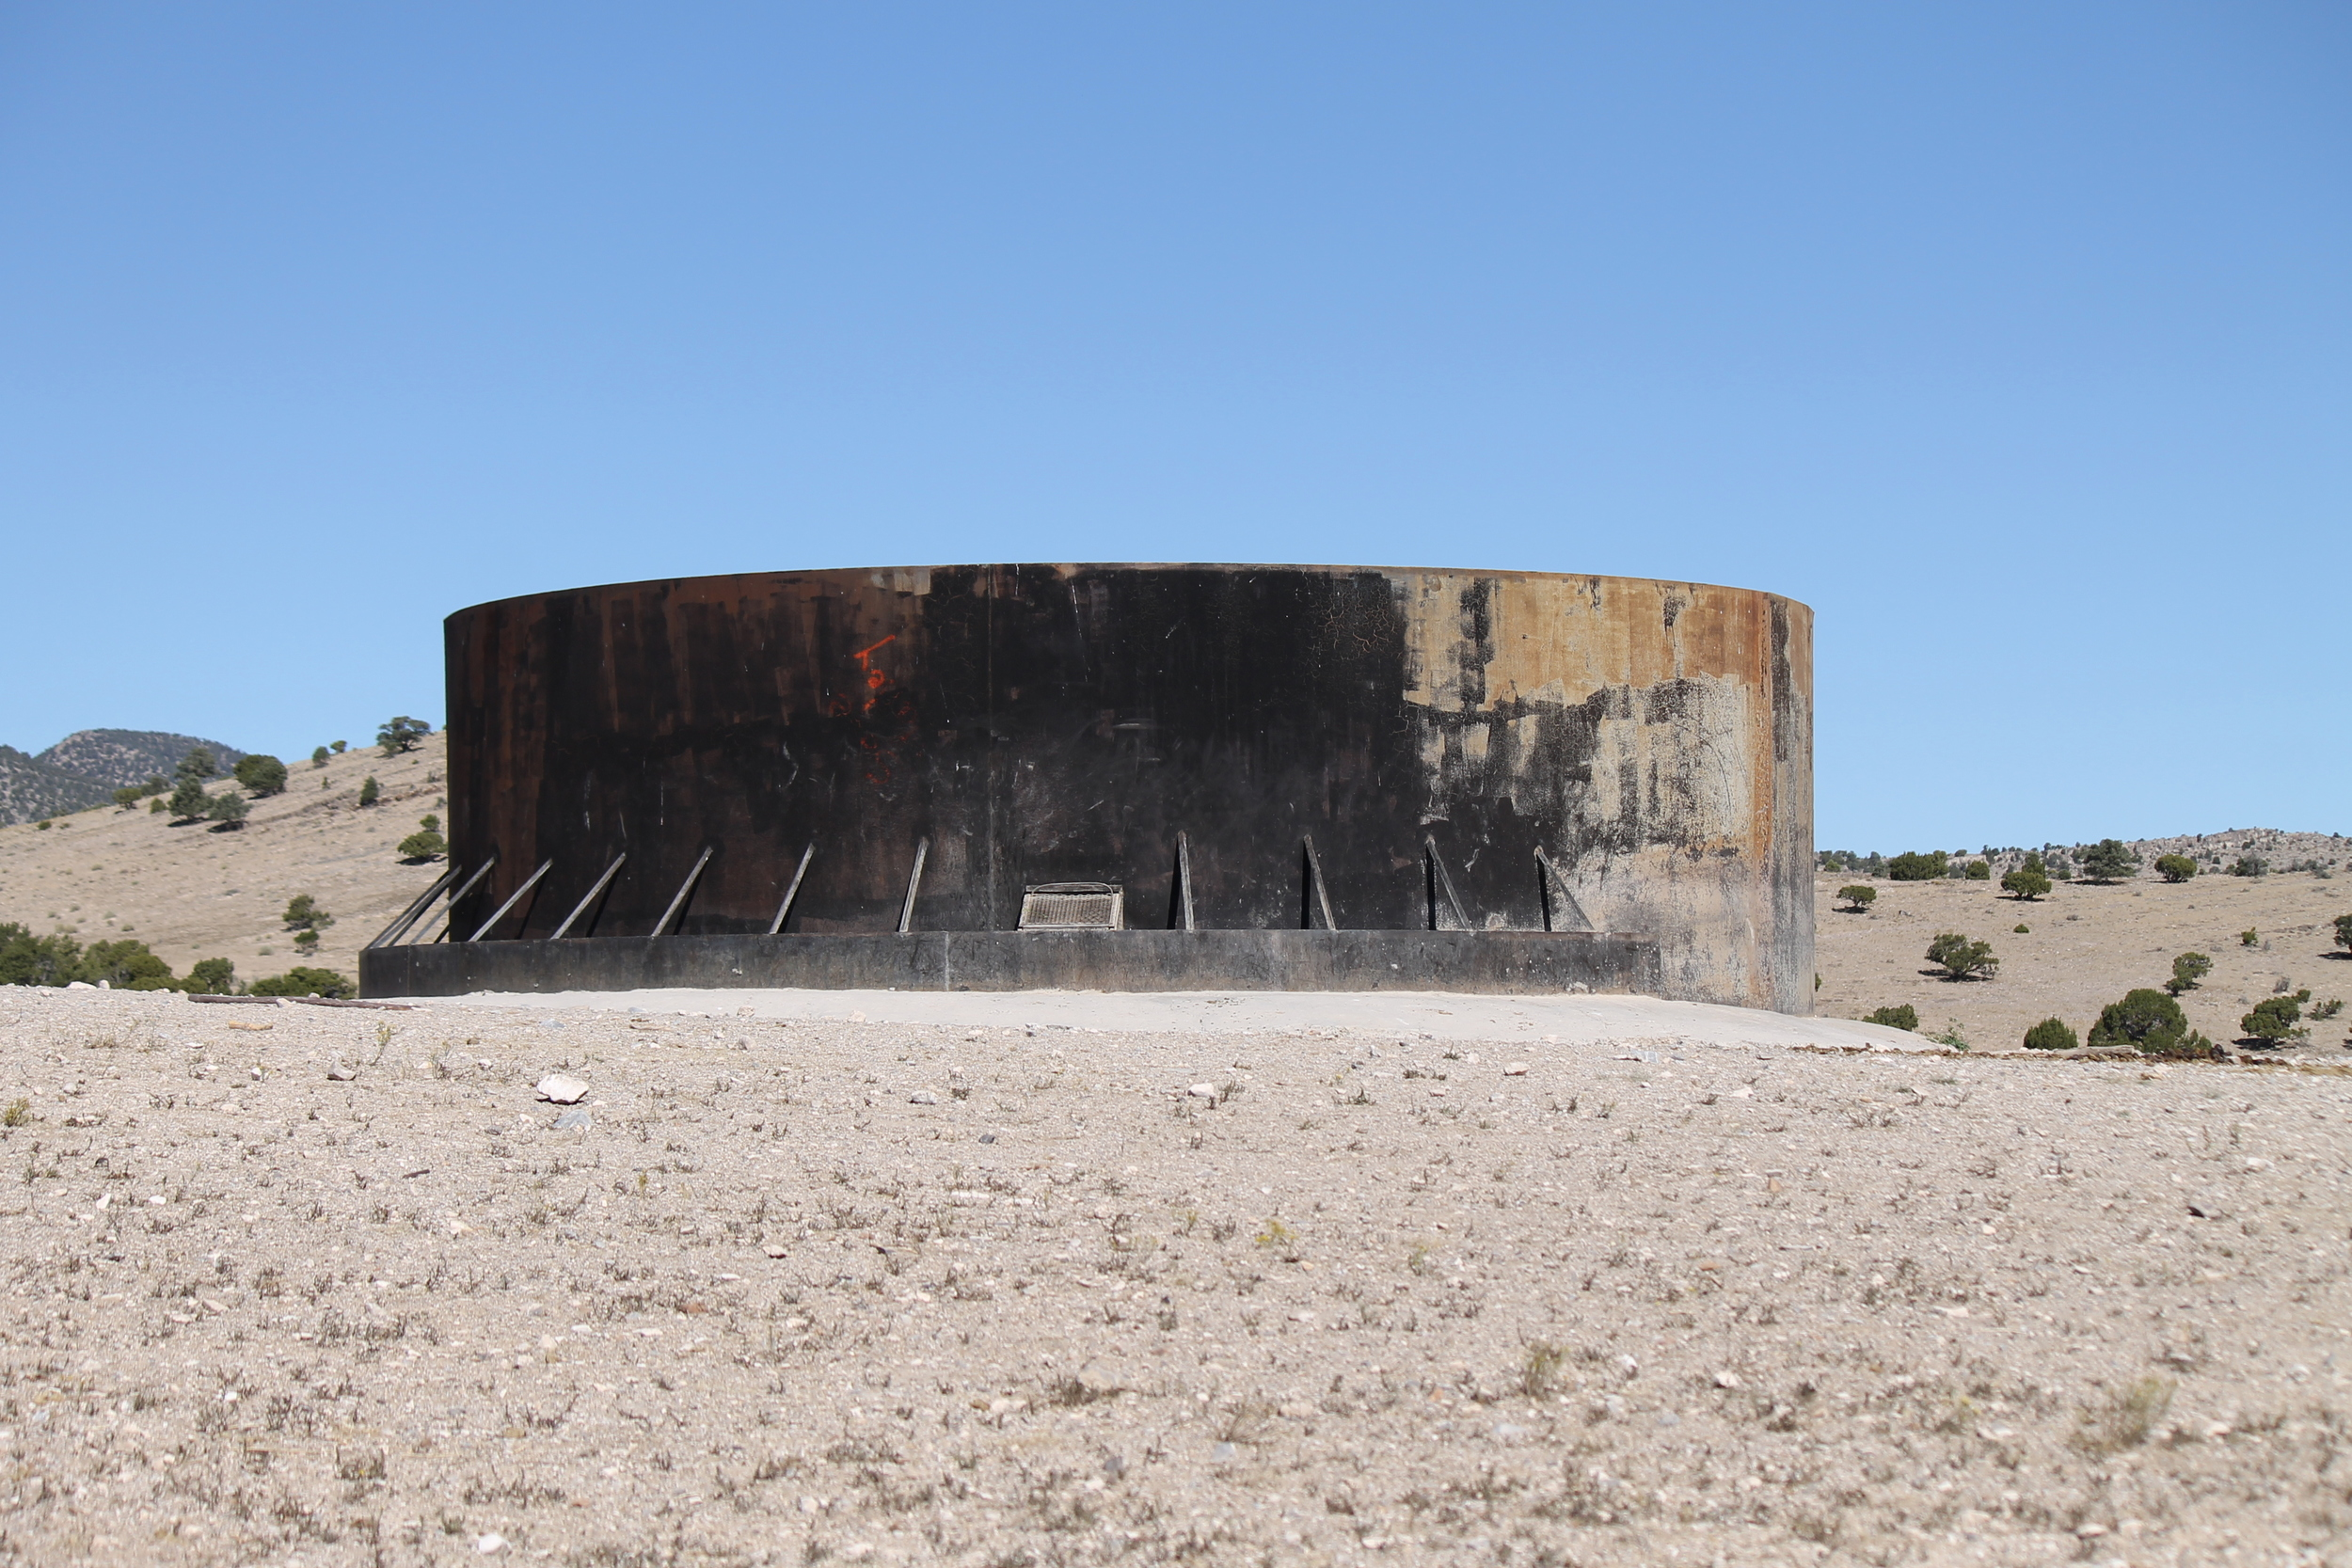 The water tank west of the Halfway Hills